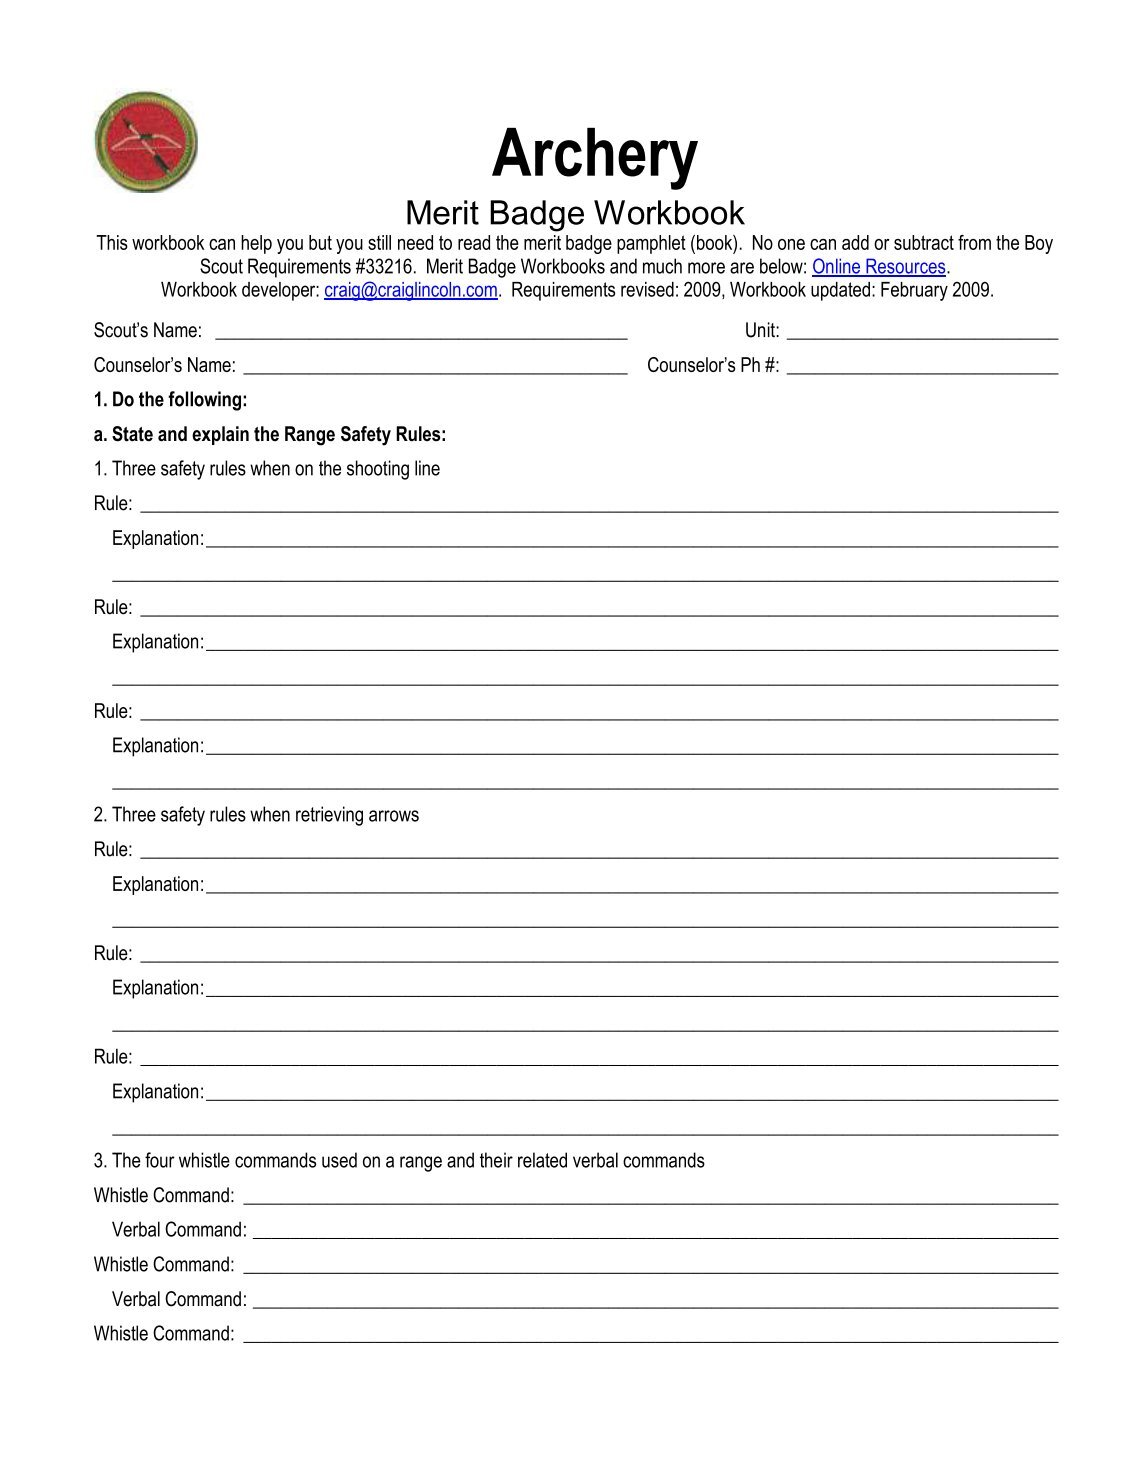 Worksheets Citizenship In The Nation Merit Badge Worksheet 100 railroading merit badge worksheet july 2014 u2013 uncategorized swimming klimttreeoflife